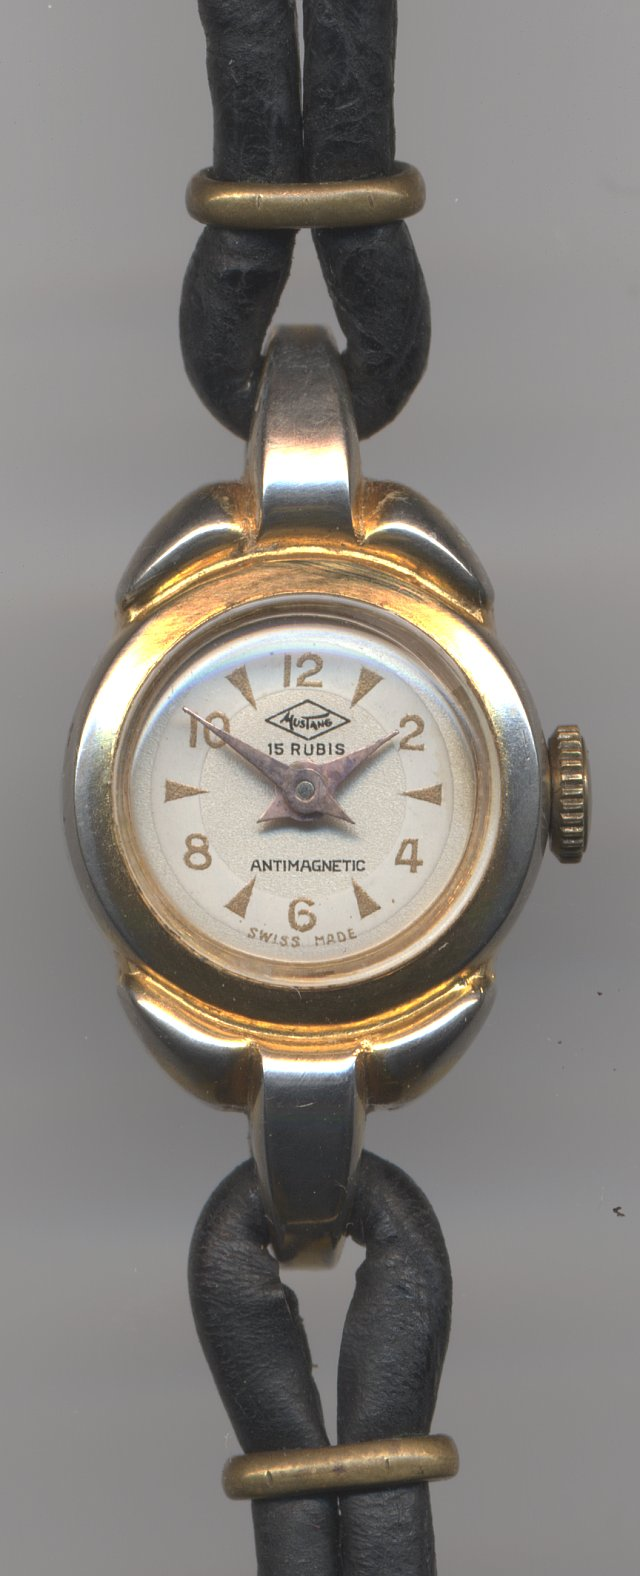 Mustang ladies' watch